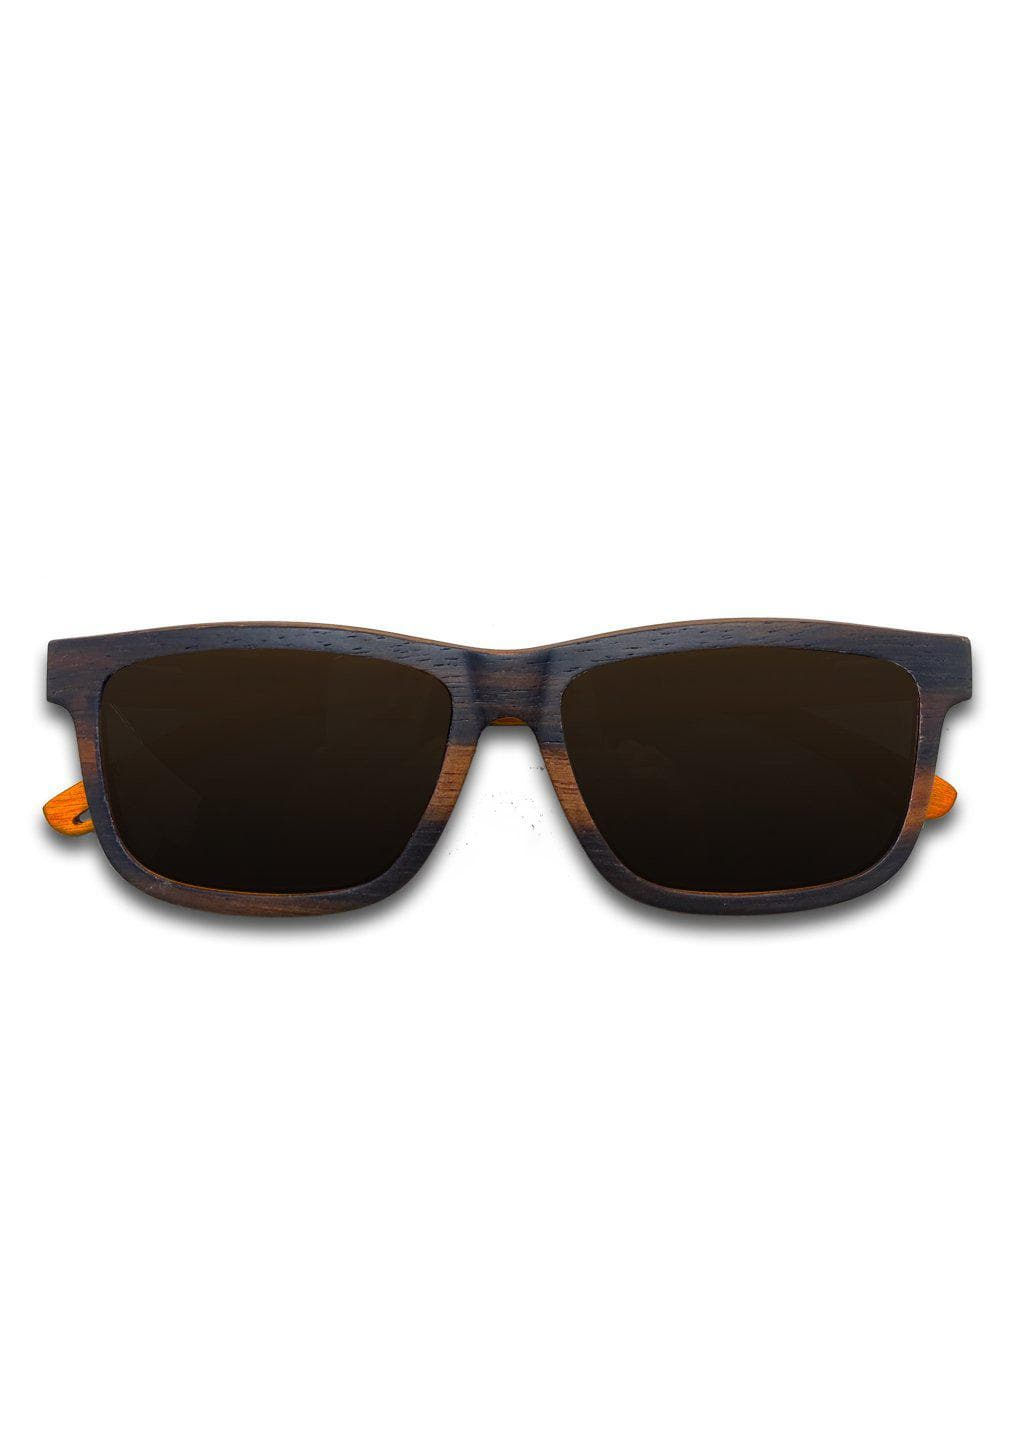 Handmade wooden wayfarers in wood and are guaranteed to give you a natural feeling of comfort and design.  Duriel is a full wooden model so all made in beautiful wood. This special edition pair is made to stand out.